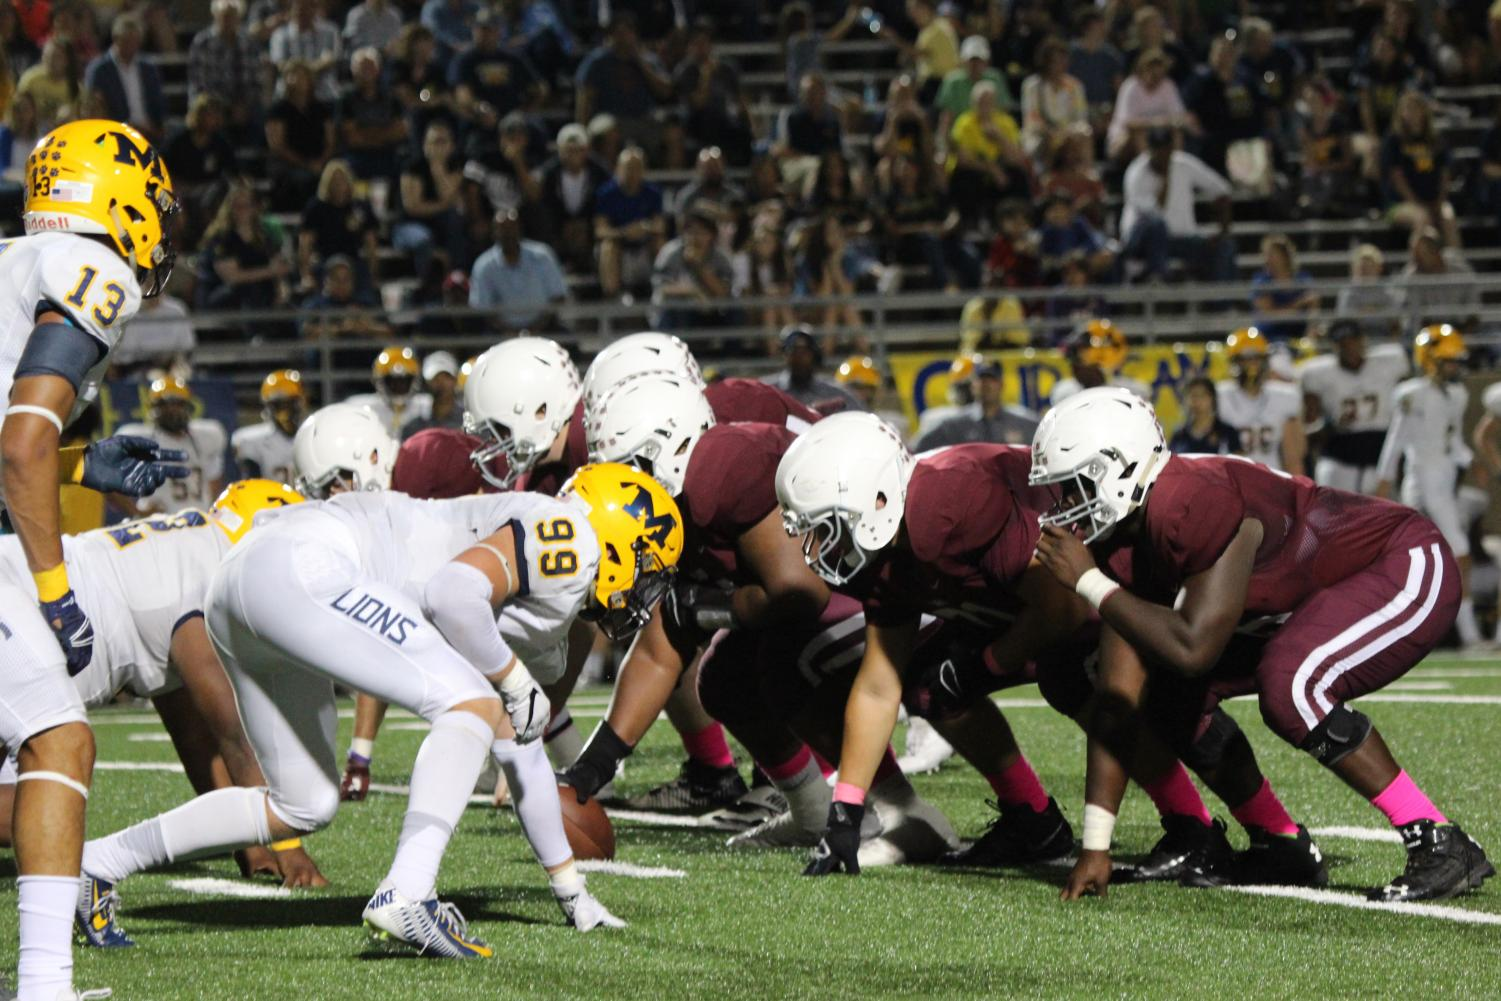 The Wildcats face off against the McKinney Lions Oct. 6 at home.